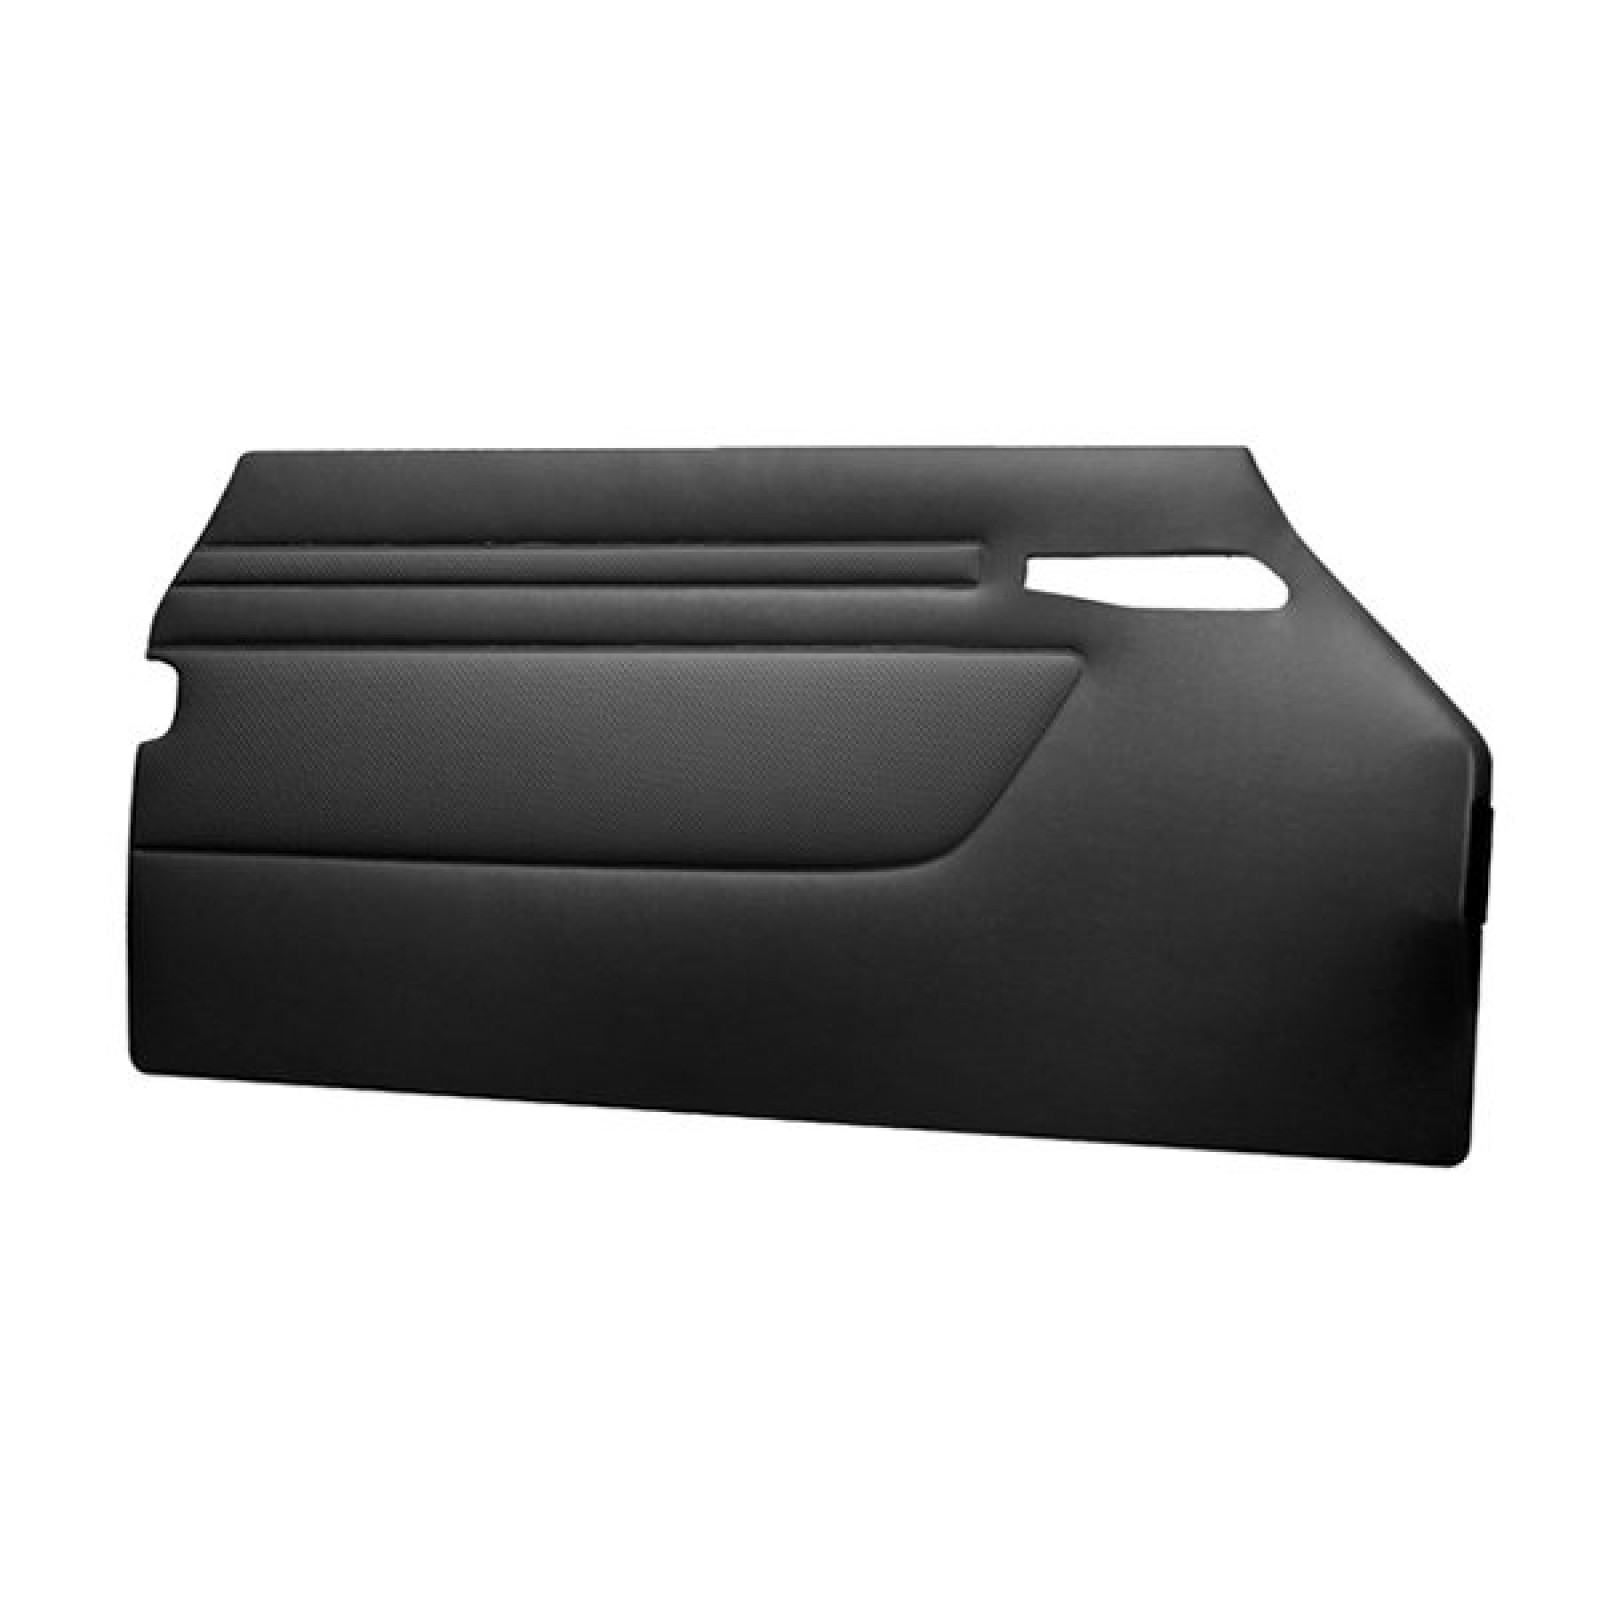 ... Mercedes-Benz SL R107 MB Tex Door Card Panel Set - Black ...